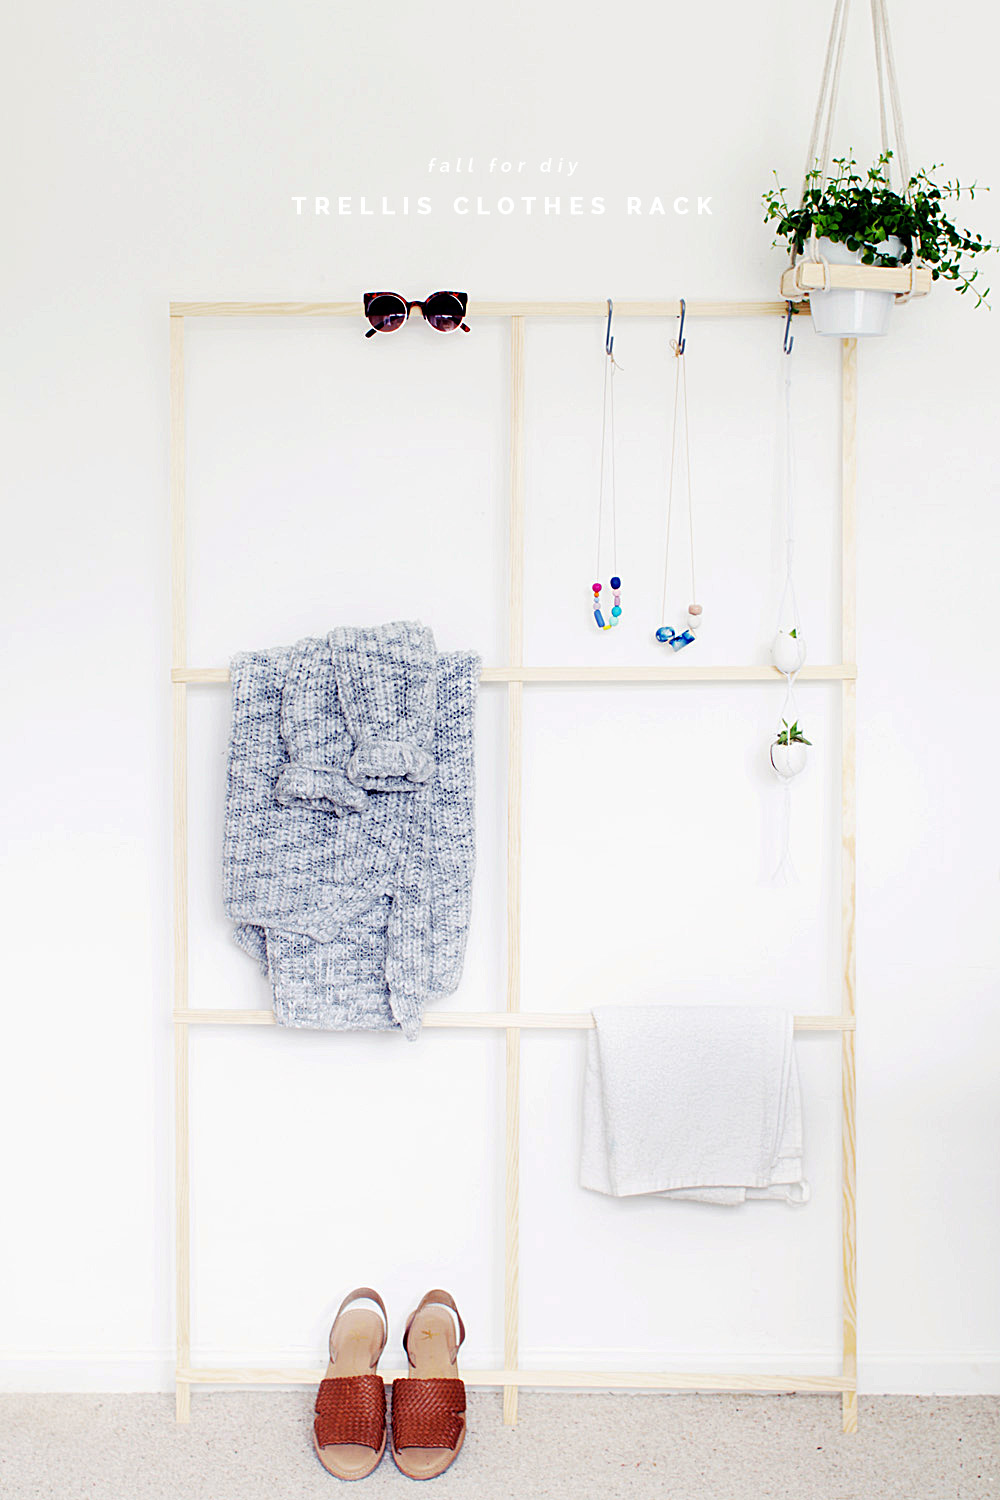 Chic and Practical DIY Clothes Racks That Put Your Wardrobe On Display images 2